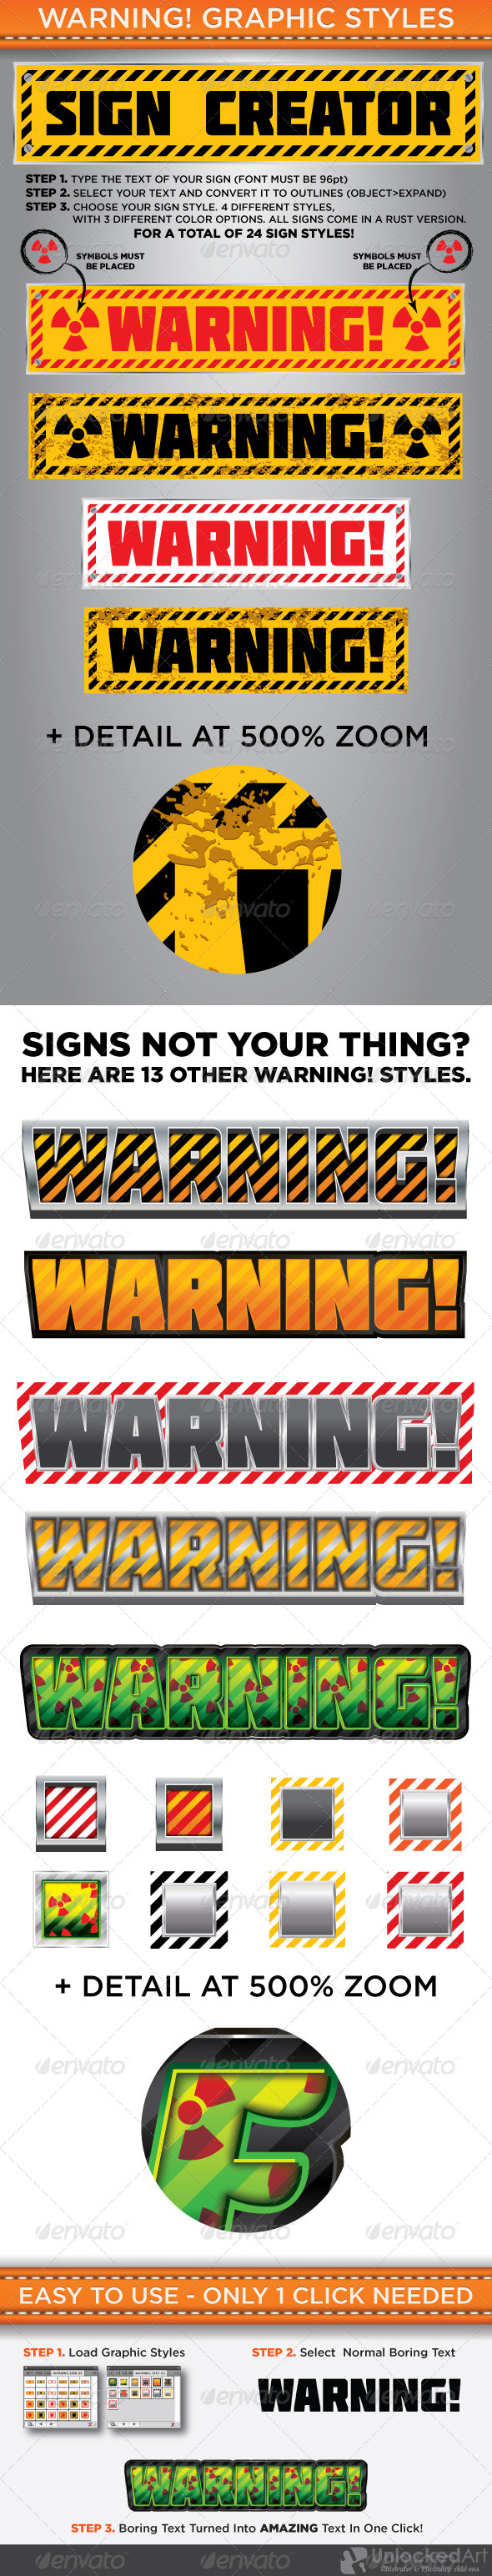 GraphicRiver Warning Graphic Styles 4712944